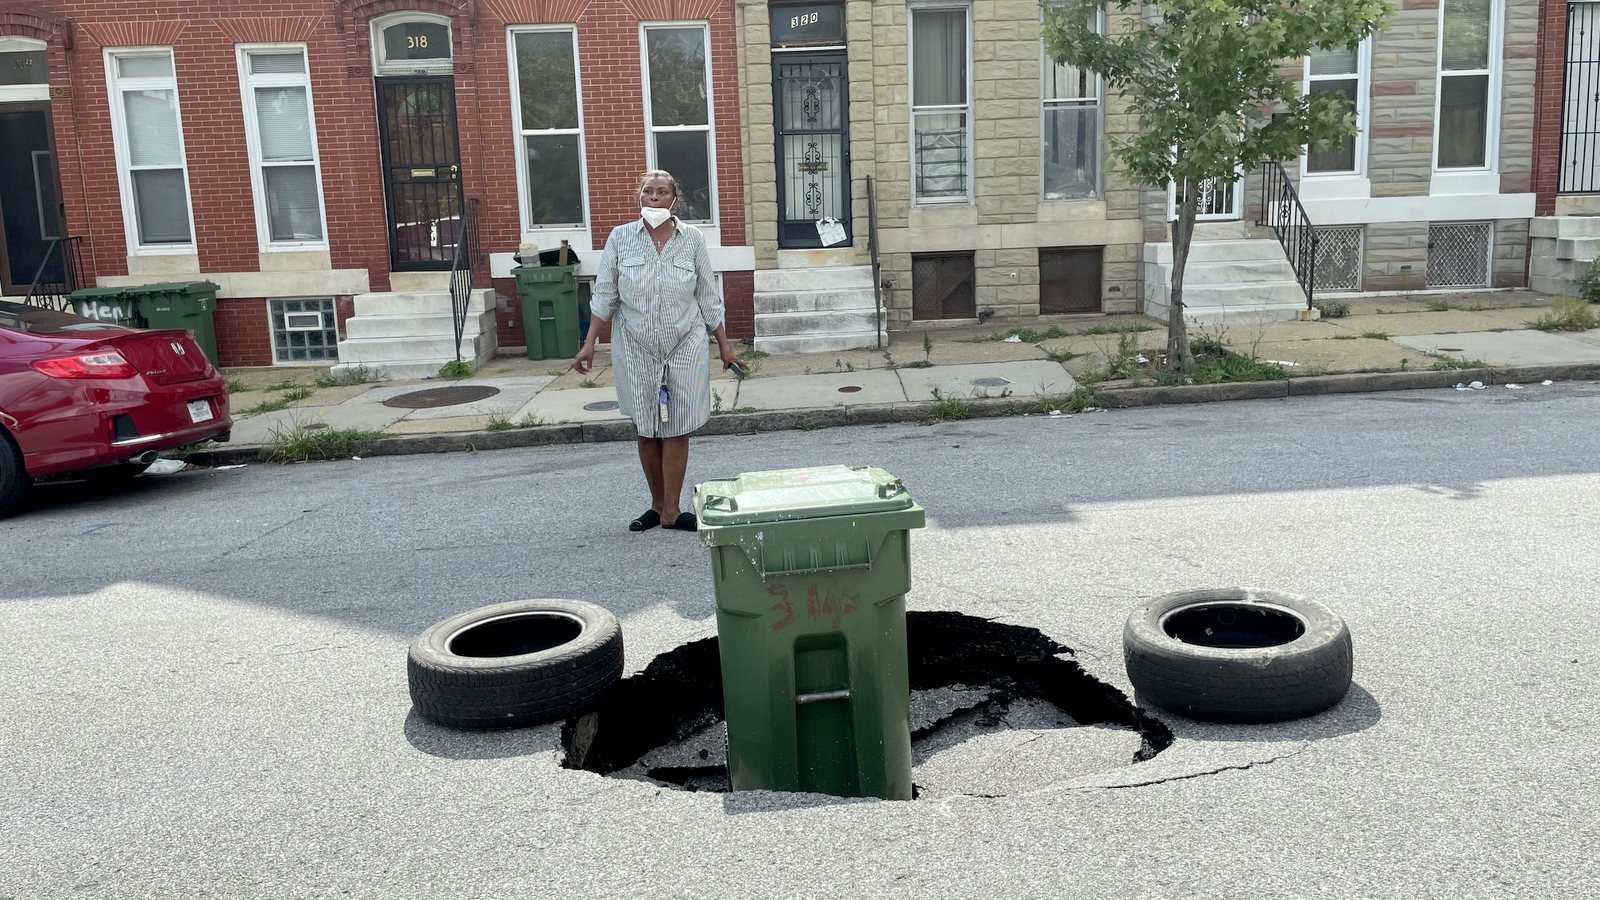 A resident points out the large hole that opened up in Carrollton Street, where trucks carrying demolition rubble were driving. (Fern Shen)